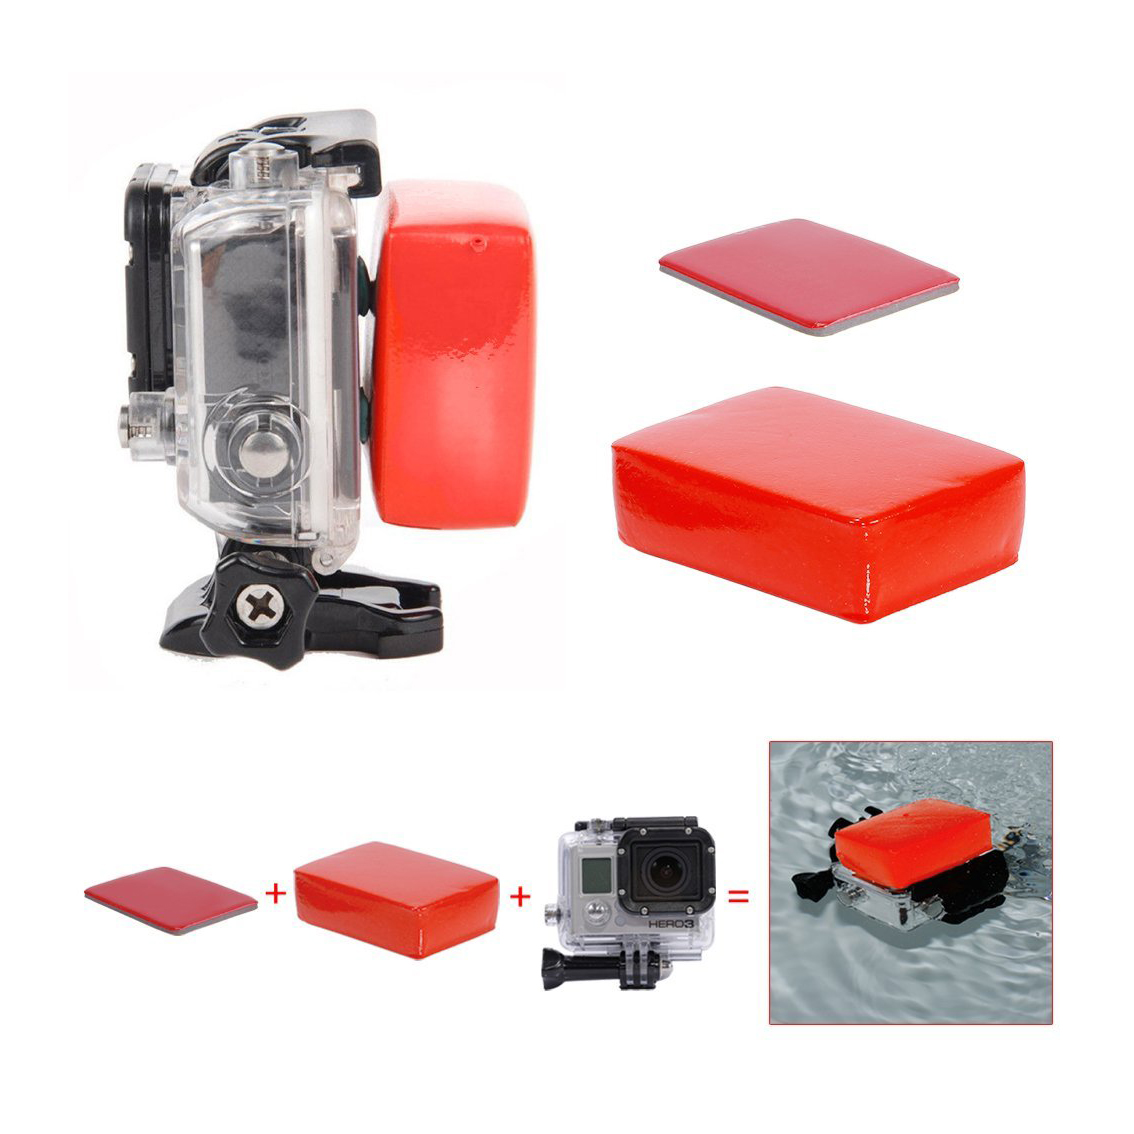 23-in-1/21-in-1 game External sports indispensable accessories for Gopro HD Hero4 Hero 1 2 3 3+ 4, SJ4000, and Sports Cameras